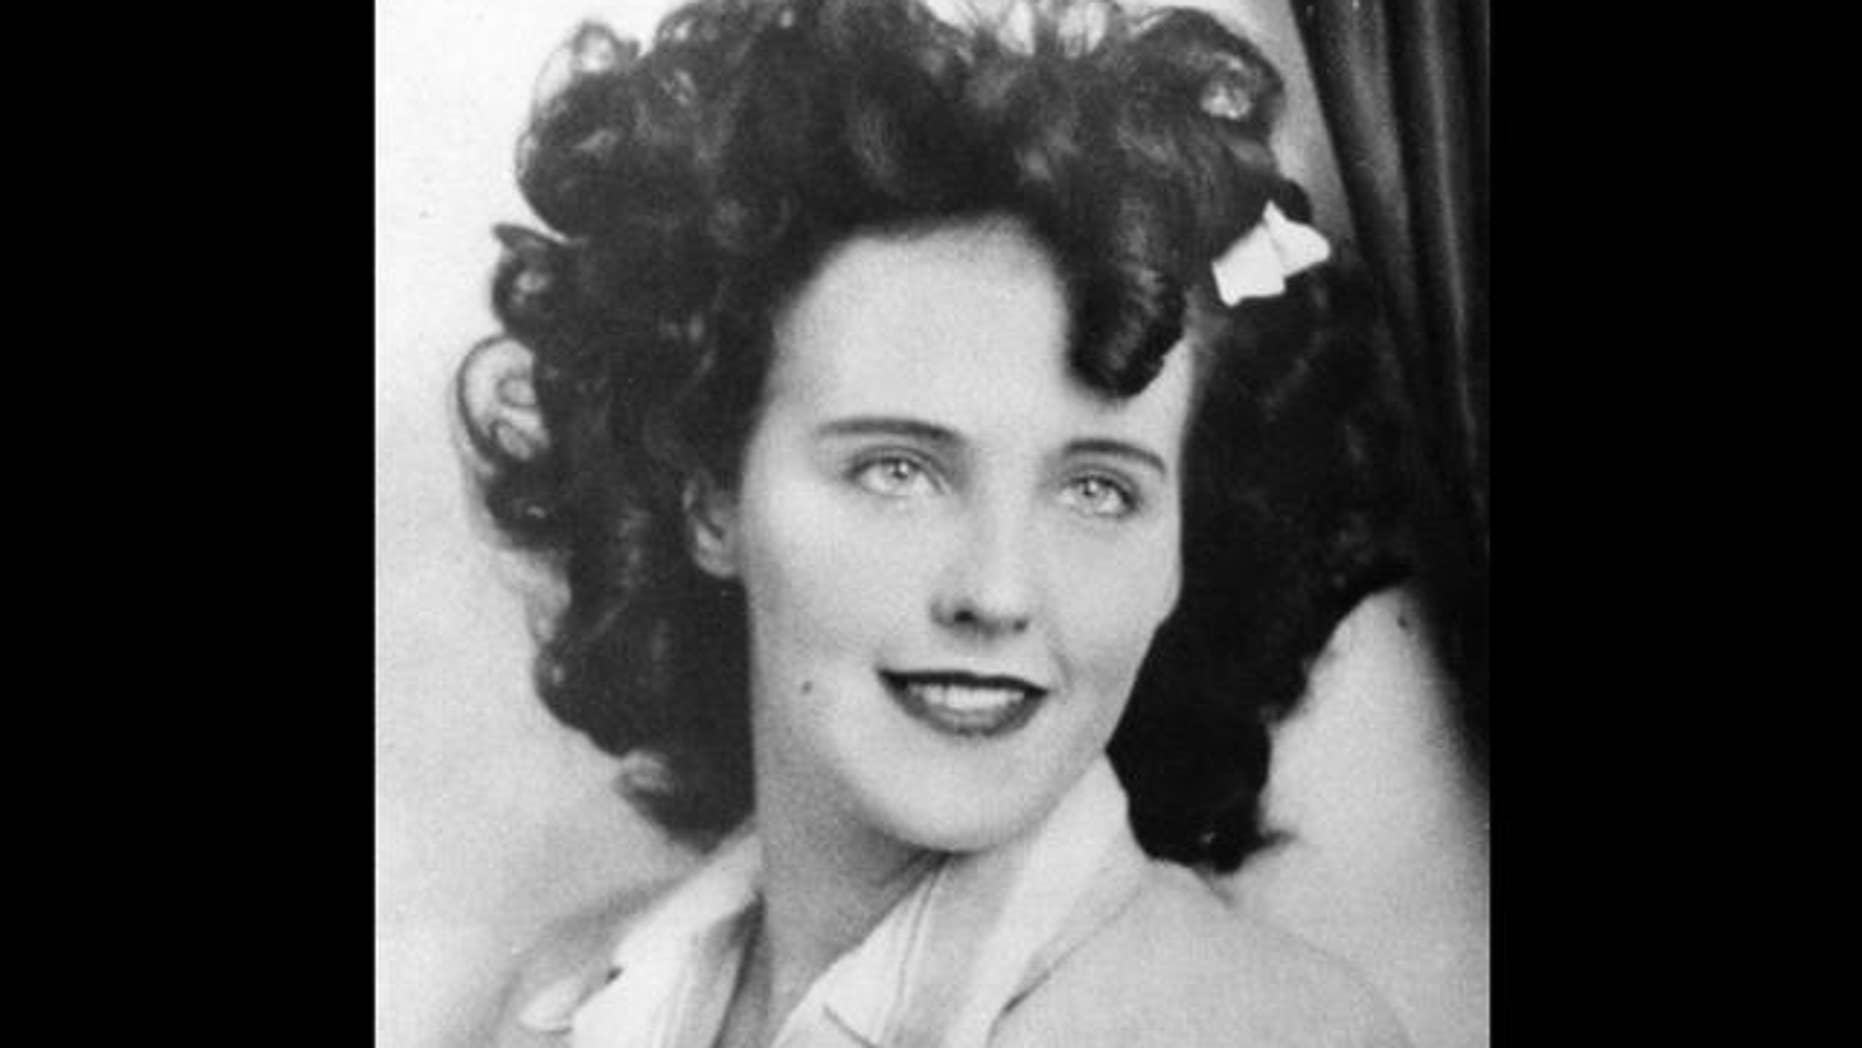 """Elizabeth Short, 22, was killed in 1947 in one of the greatest unsolved murders in Los Angeles history. The aspiring actress was nicknamed the """"Black Dhalia"""" in media reports at the time."""